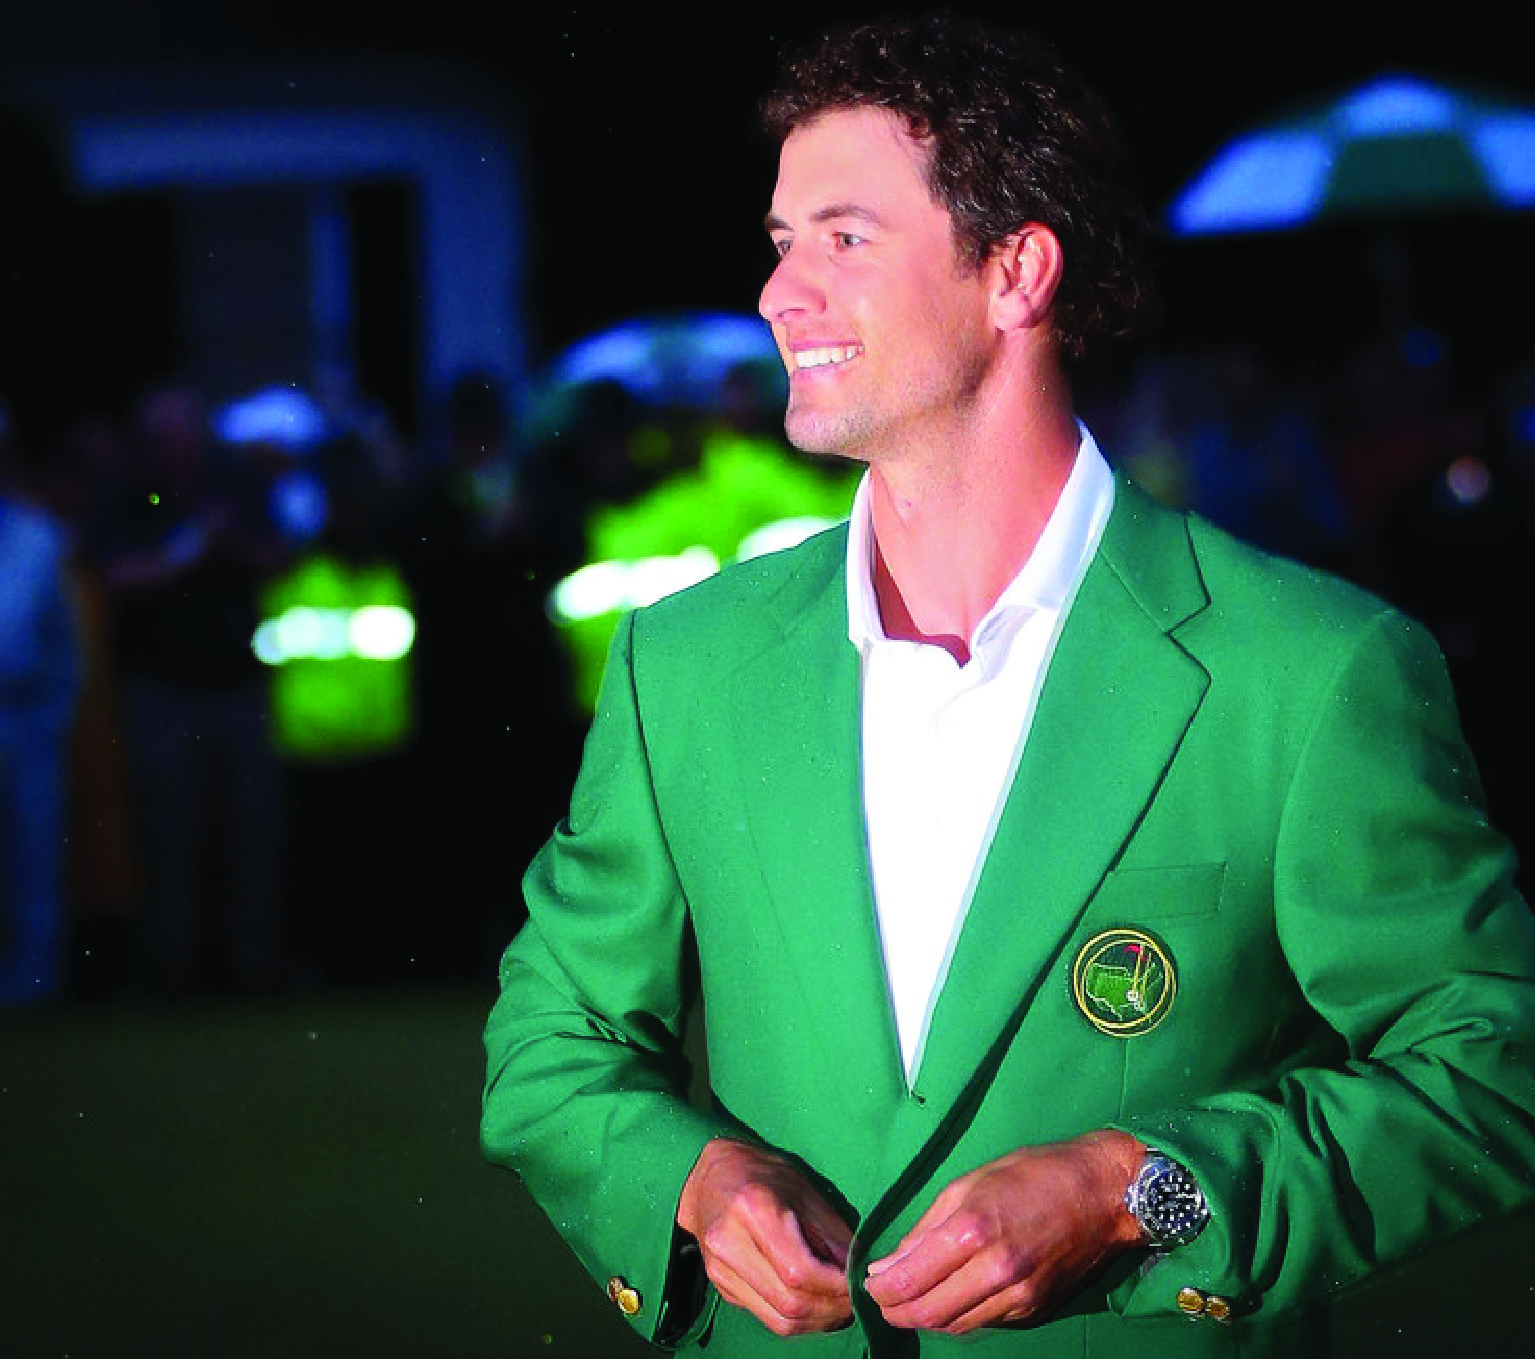 Adam Scott with his Green Jacket and Rolex watch.